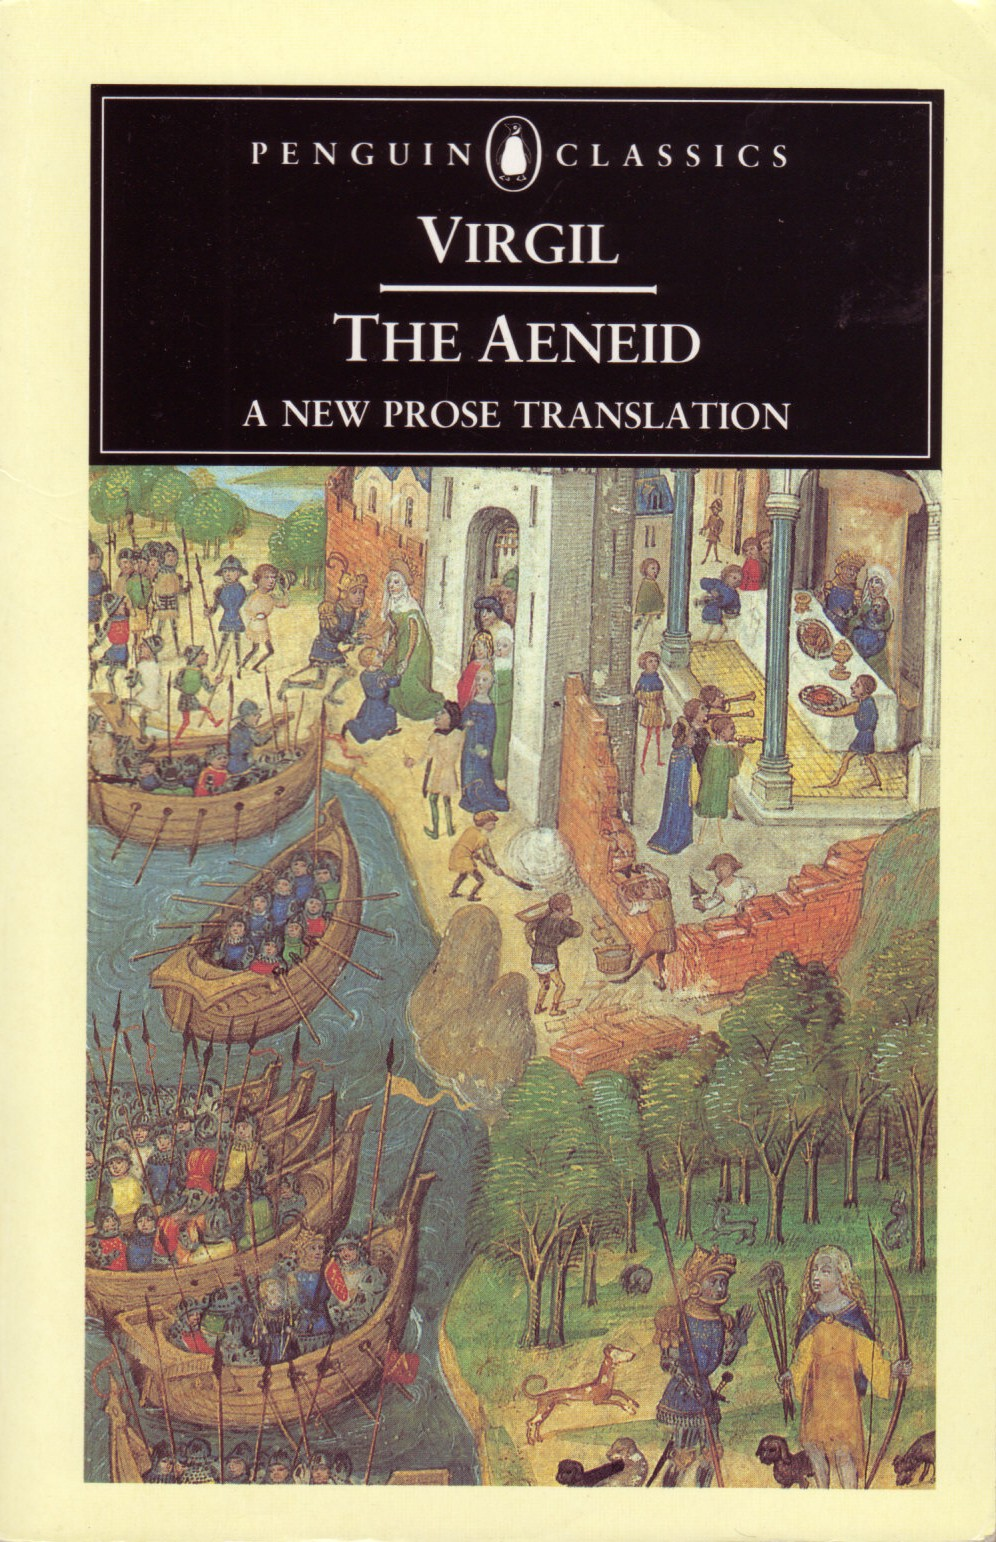 impact of virgils the aeneid on the roman world The reception of virgil's masterpiece the aeneid in the impact which virgil's by the virgil's aeneid virgil's aeneid in the romanian culture.